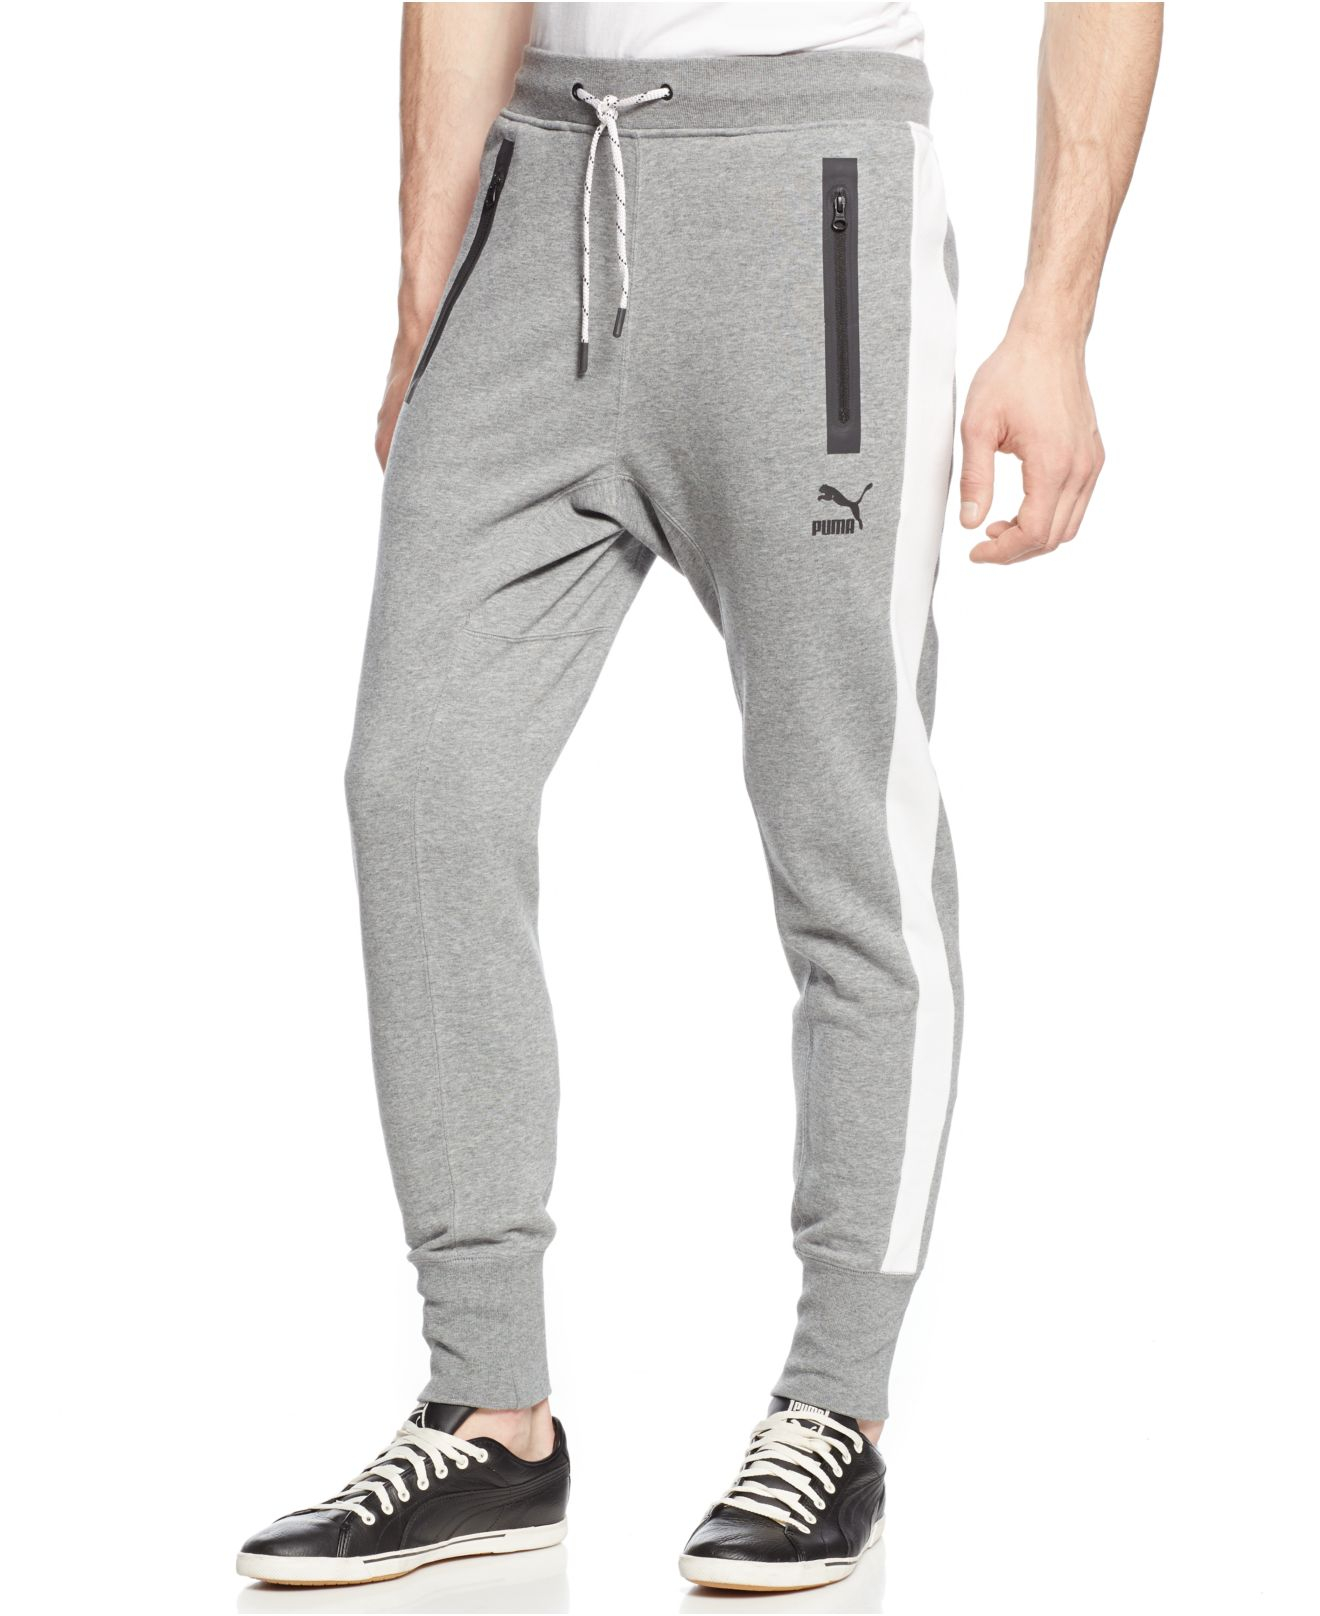 b5d3eae0a806 Lyst - PUMA French Terry Joggers in Gray for Men